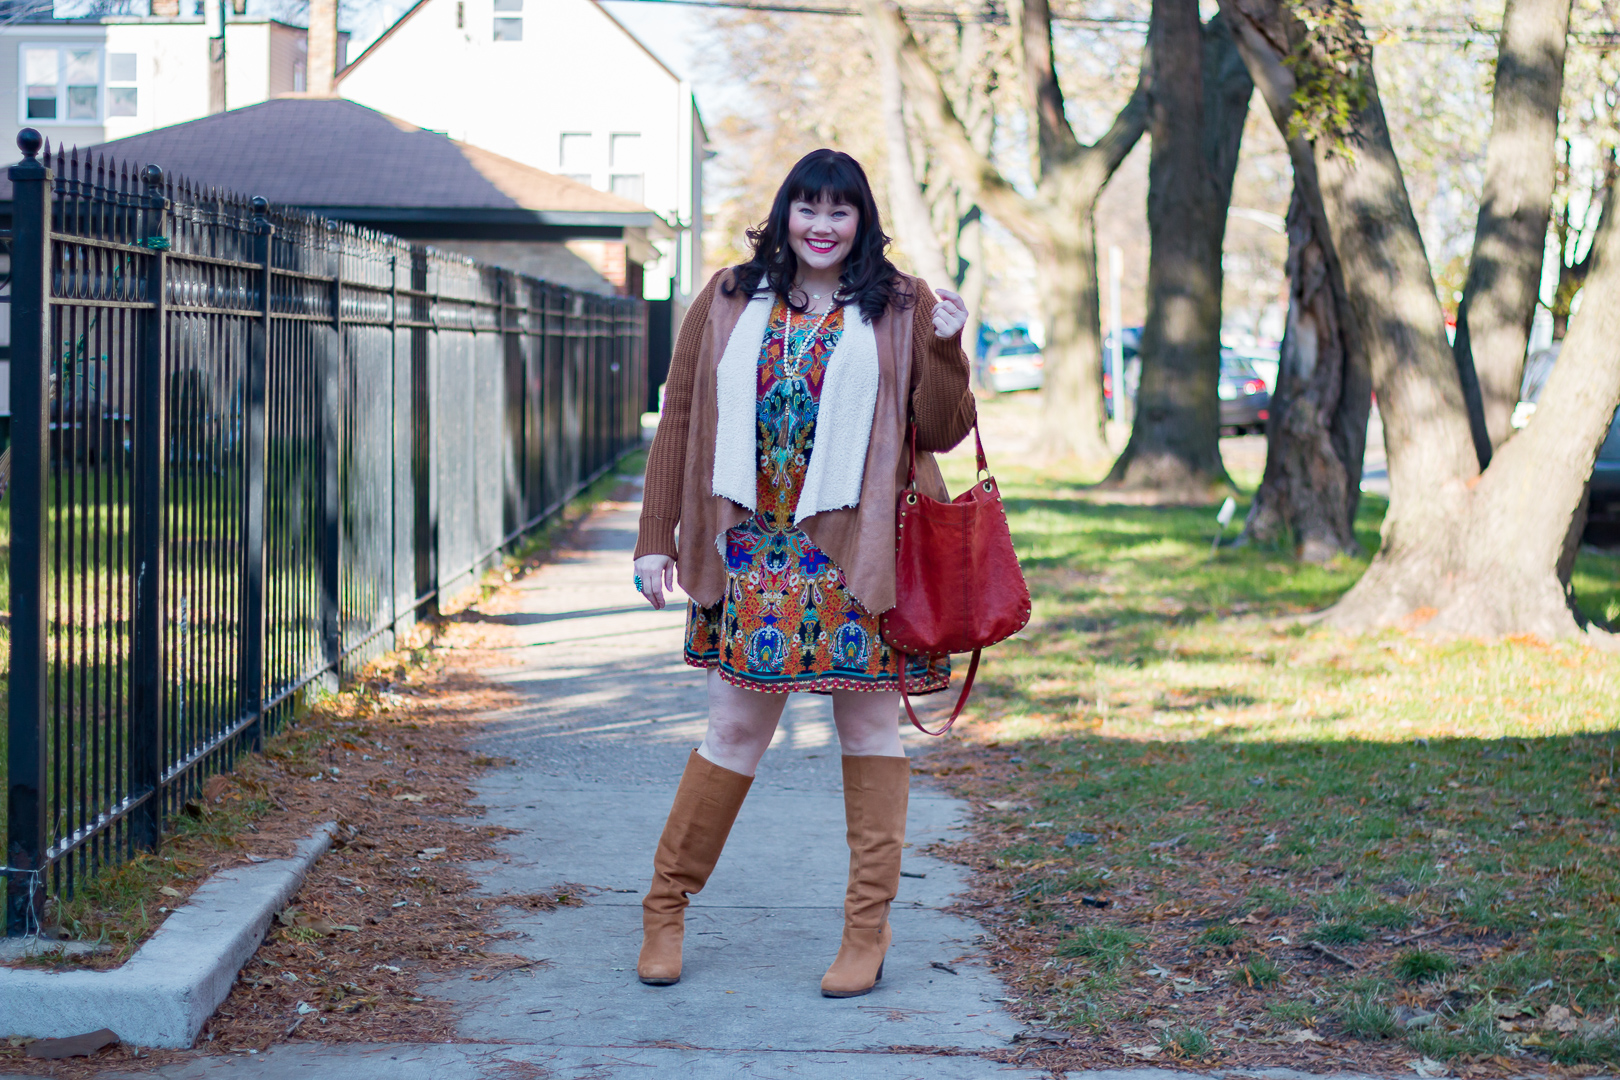 Just My Size Plus Size Dresses, Paisley, Plus Size Style, Plus Size Fashion, Style Plus Curves, Chicago Blogger, Chicago Plus Size Blogger, Plus Size Blogger, Amber McCulloch